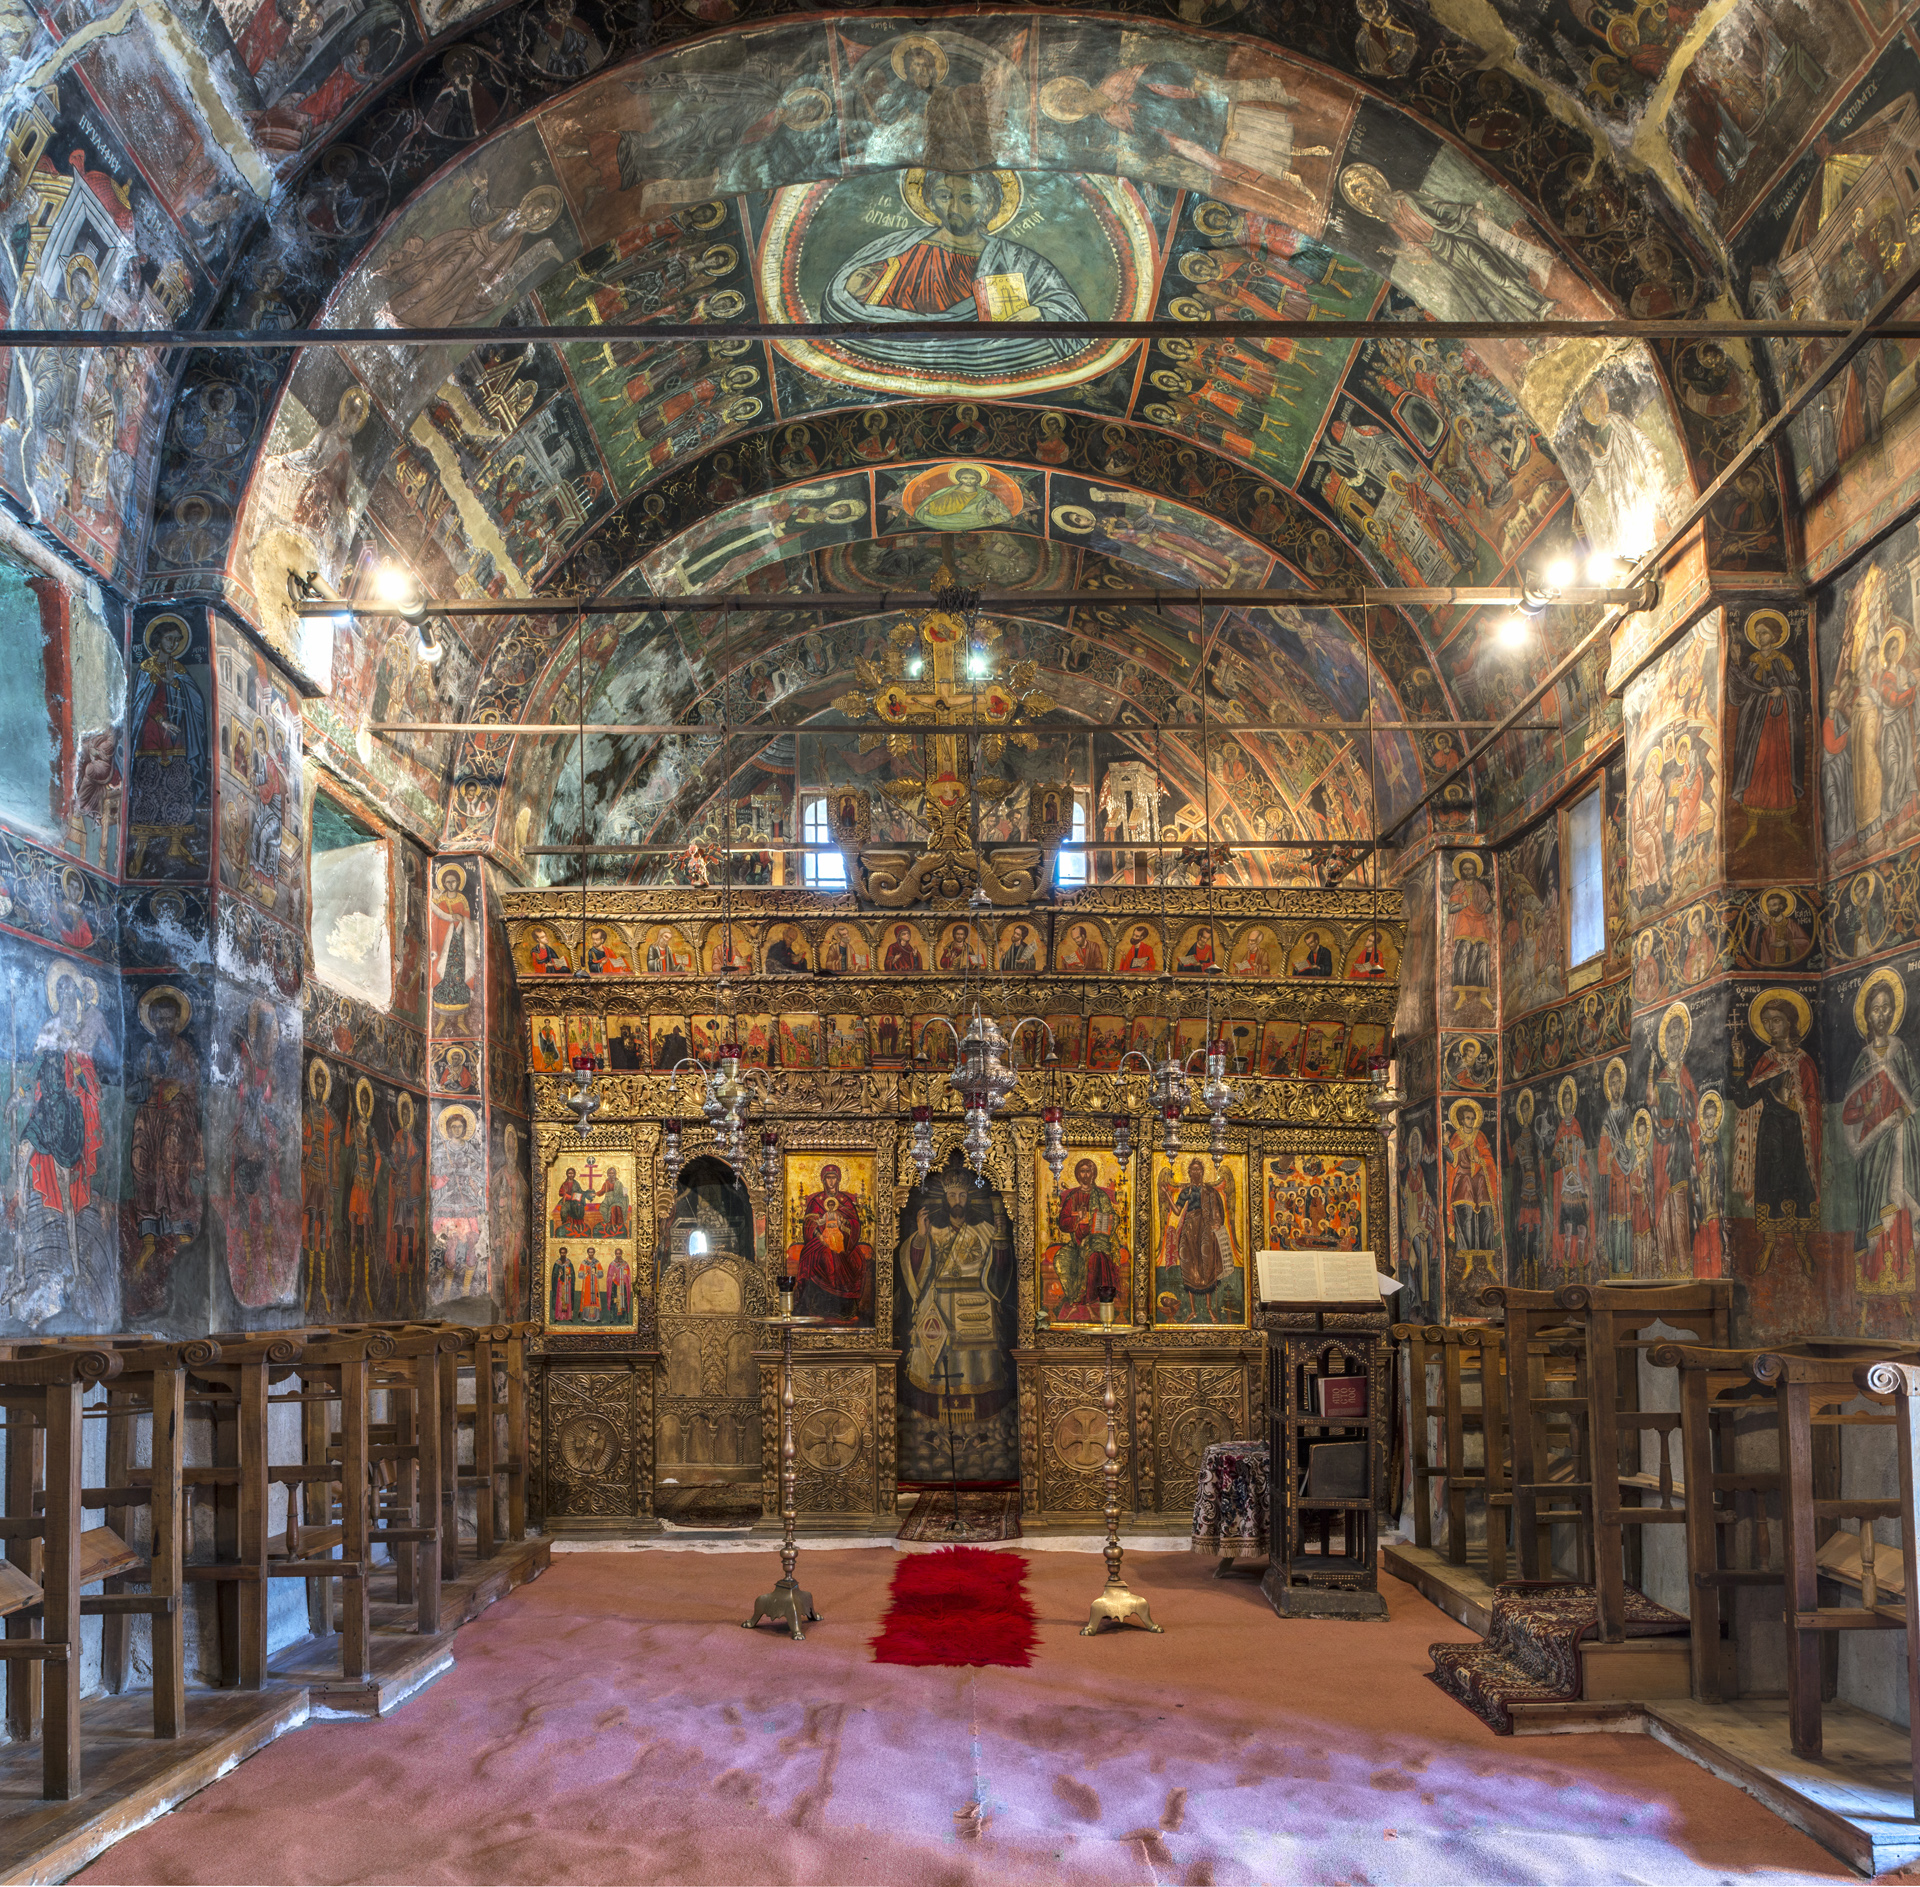 agios nikolaos buddhist personals Agios nikolaos is in lassithi prefecture in crete agios nikolaos is ideal for exploring east crete agios nikolaos offers many sights such as the lake of agios nikolaos, the archaeological and folk museums, nightlife and many beaches in and near agios nikolaos.